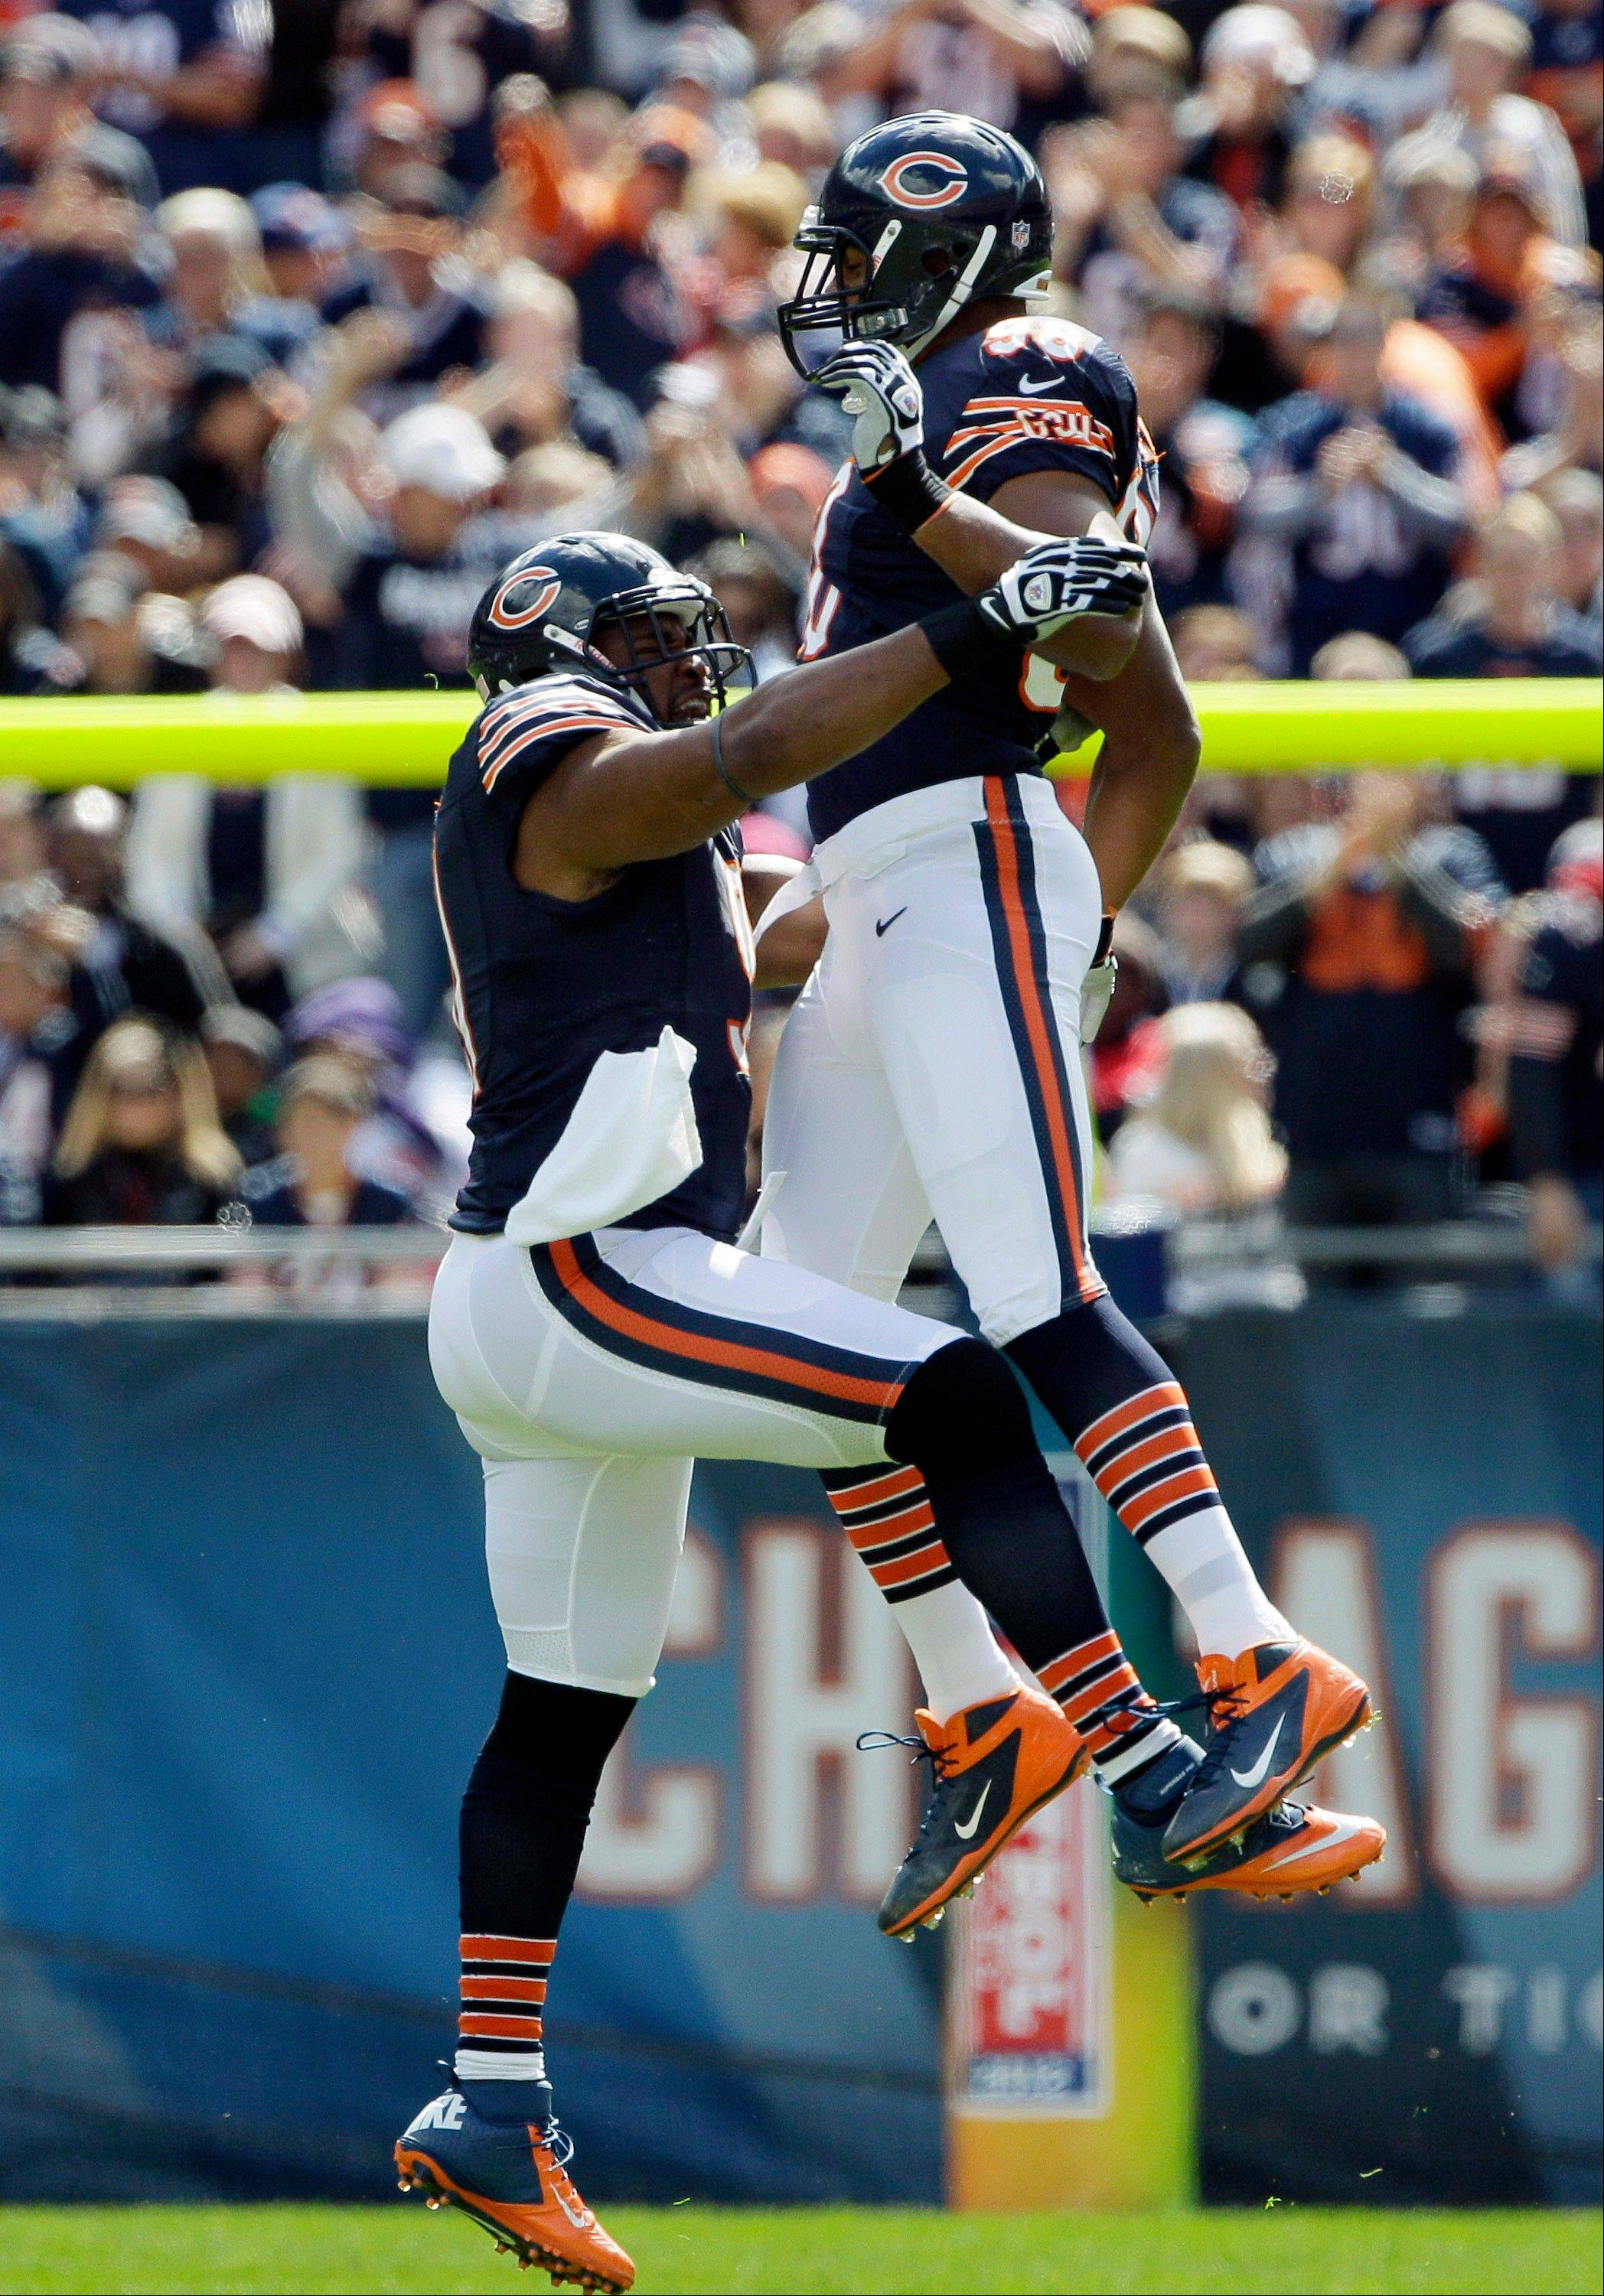 Chicago Bears defensive tackle Amobi Okoye, left, celebrates his sack of the St. Louis Rams quarterback with defensive end Corey Wootton in the first half of an NFL football game in Chicago, Sunday.